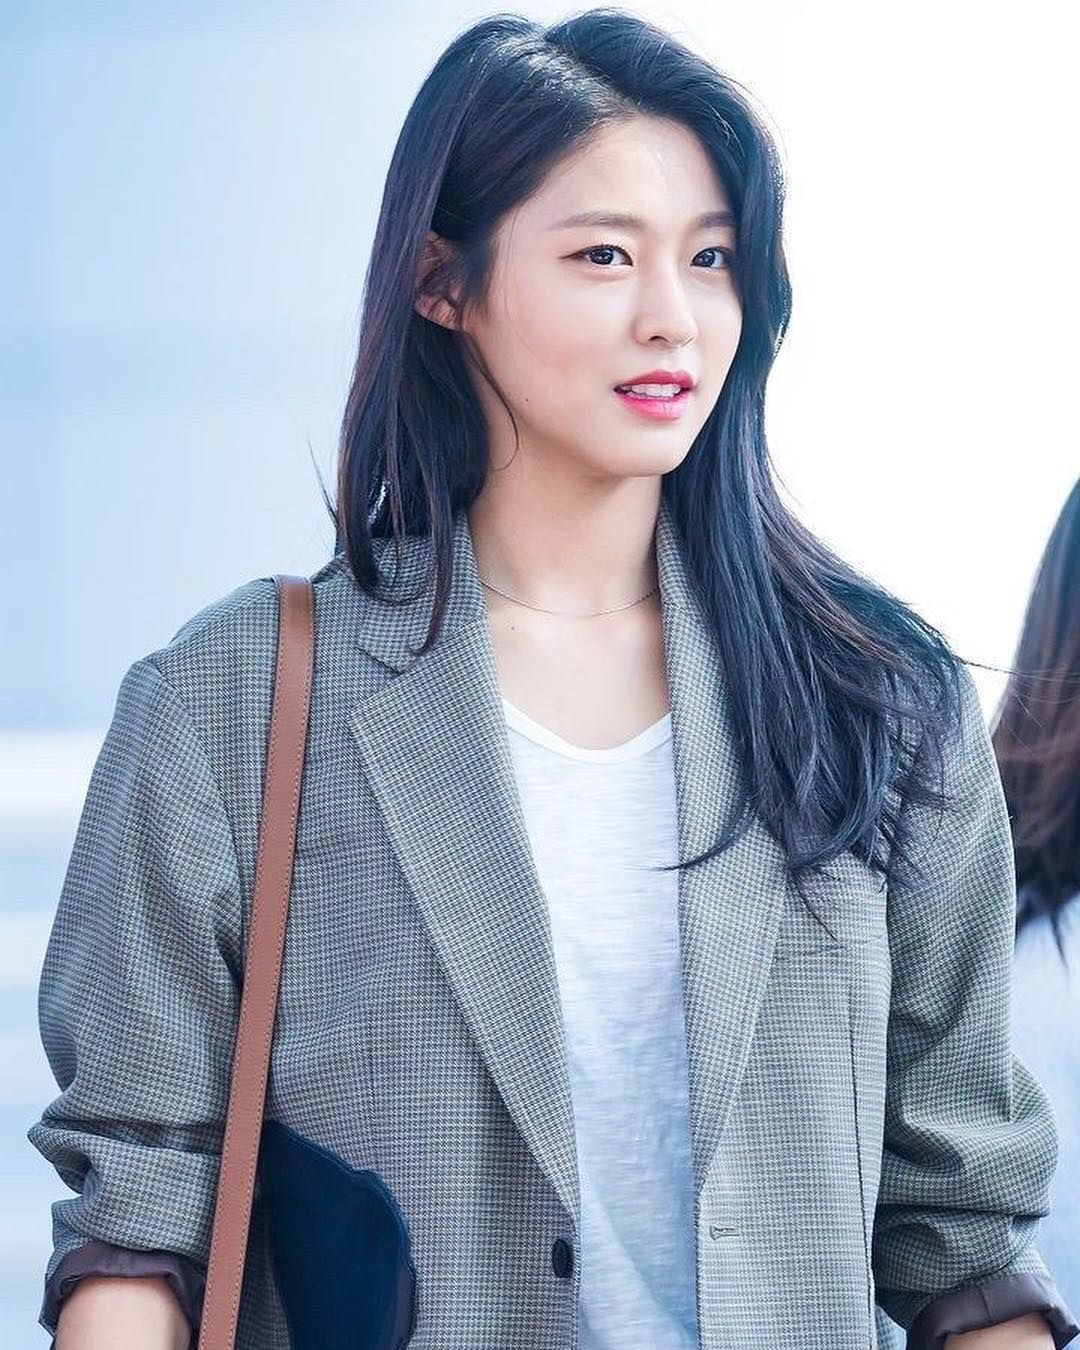 Who Is Kim Seolhyun Dating? Relationship Timeline And Much More